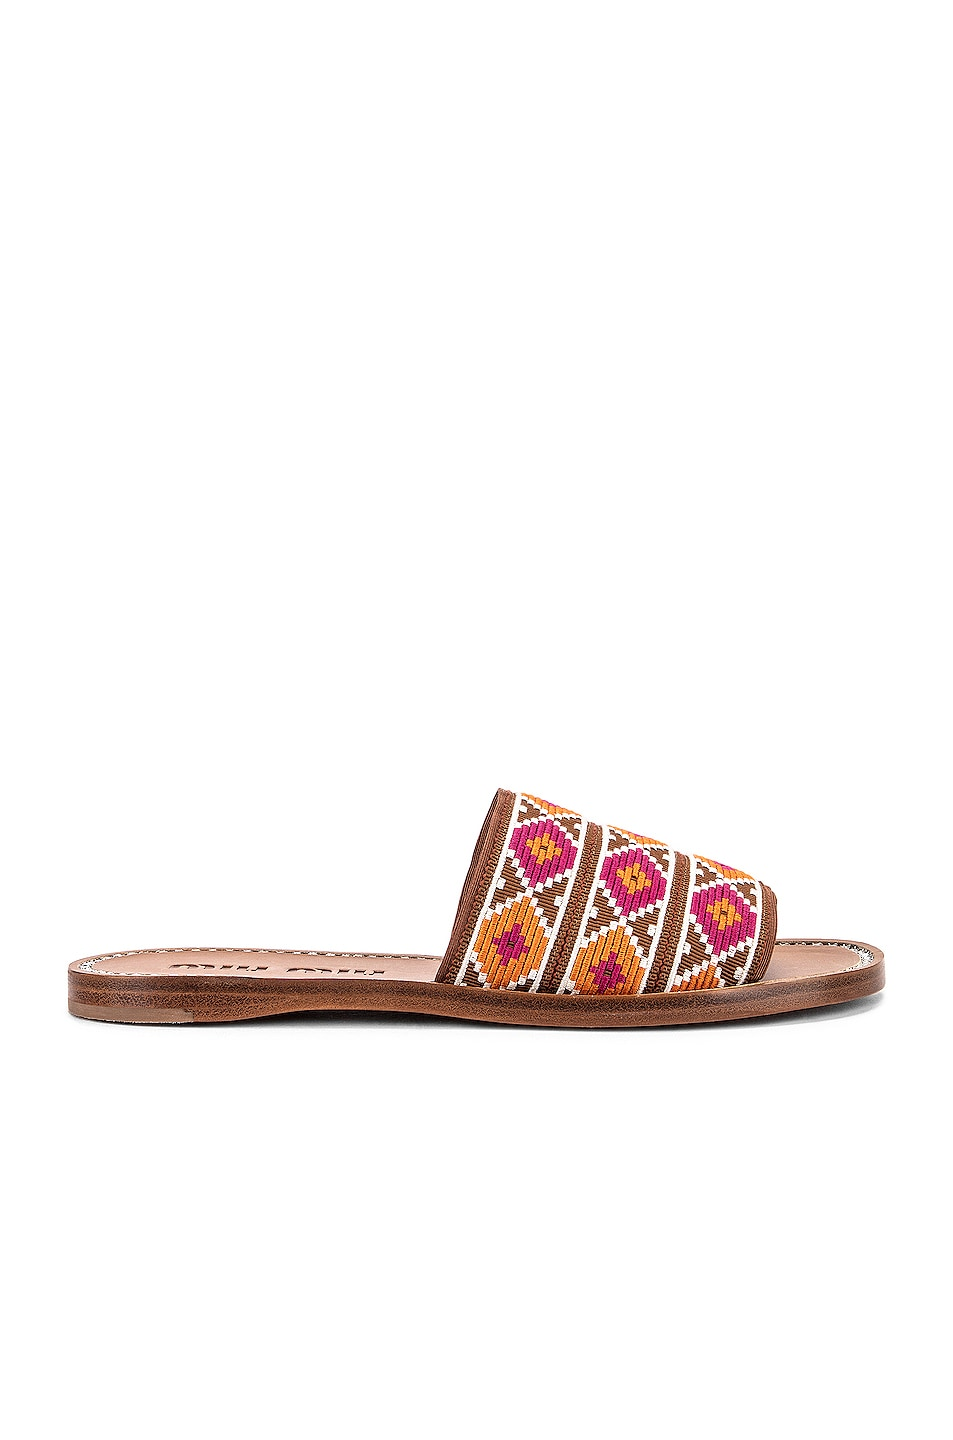 Image 1 of Miu Miu Jewel Flat Sandals in Fuxia & Papaya